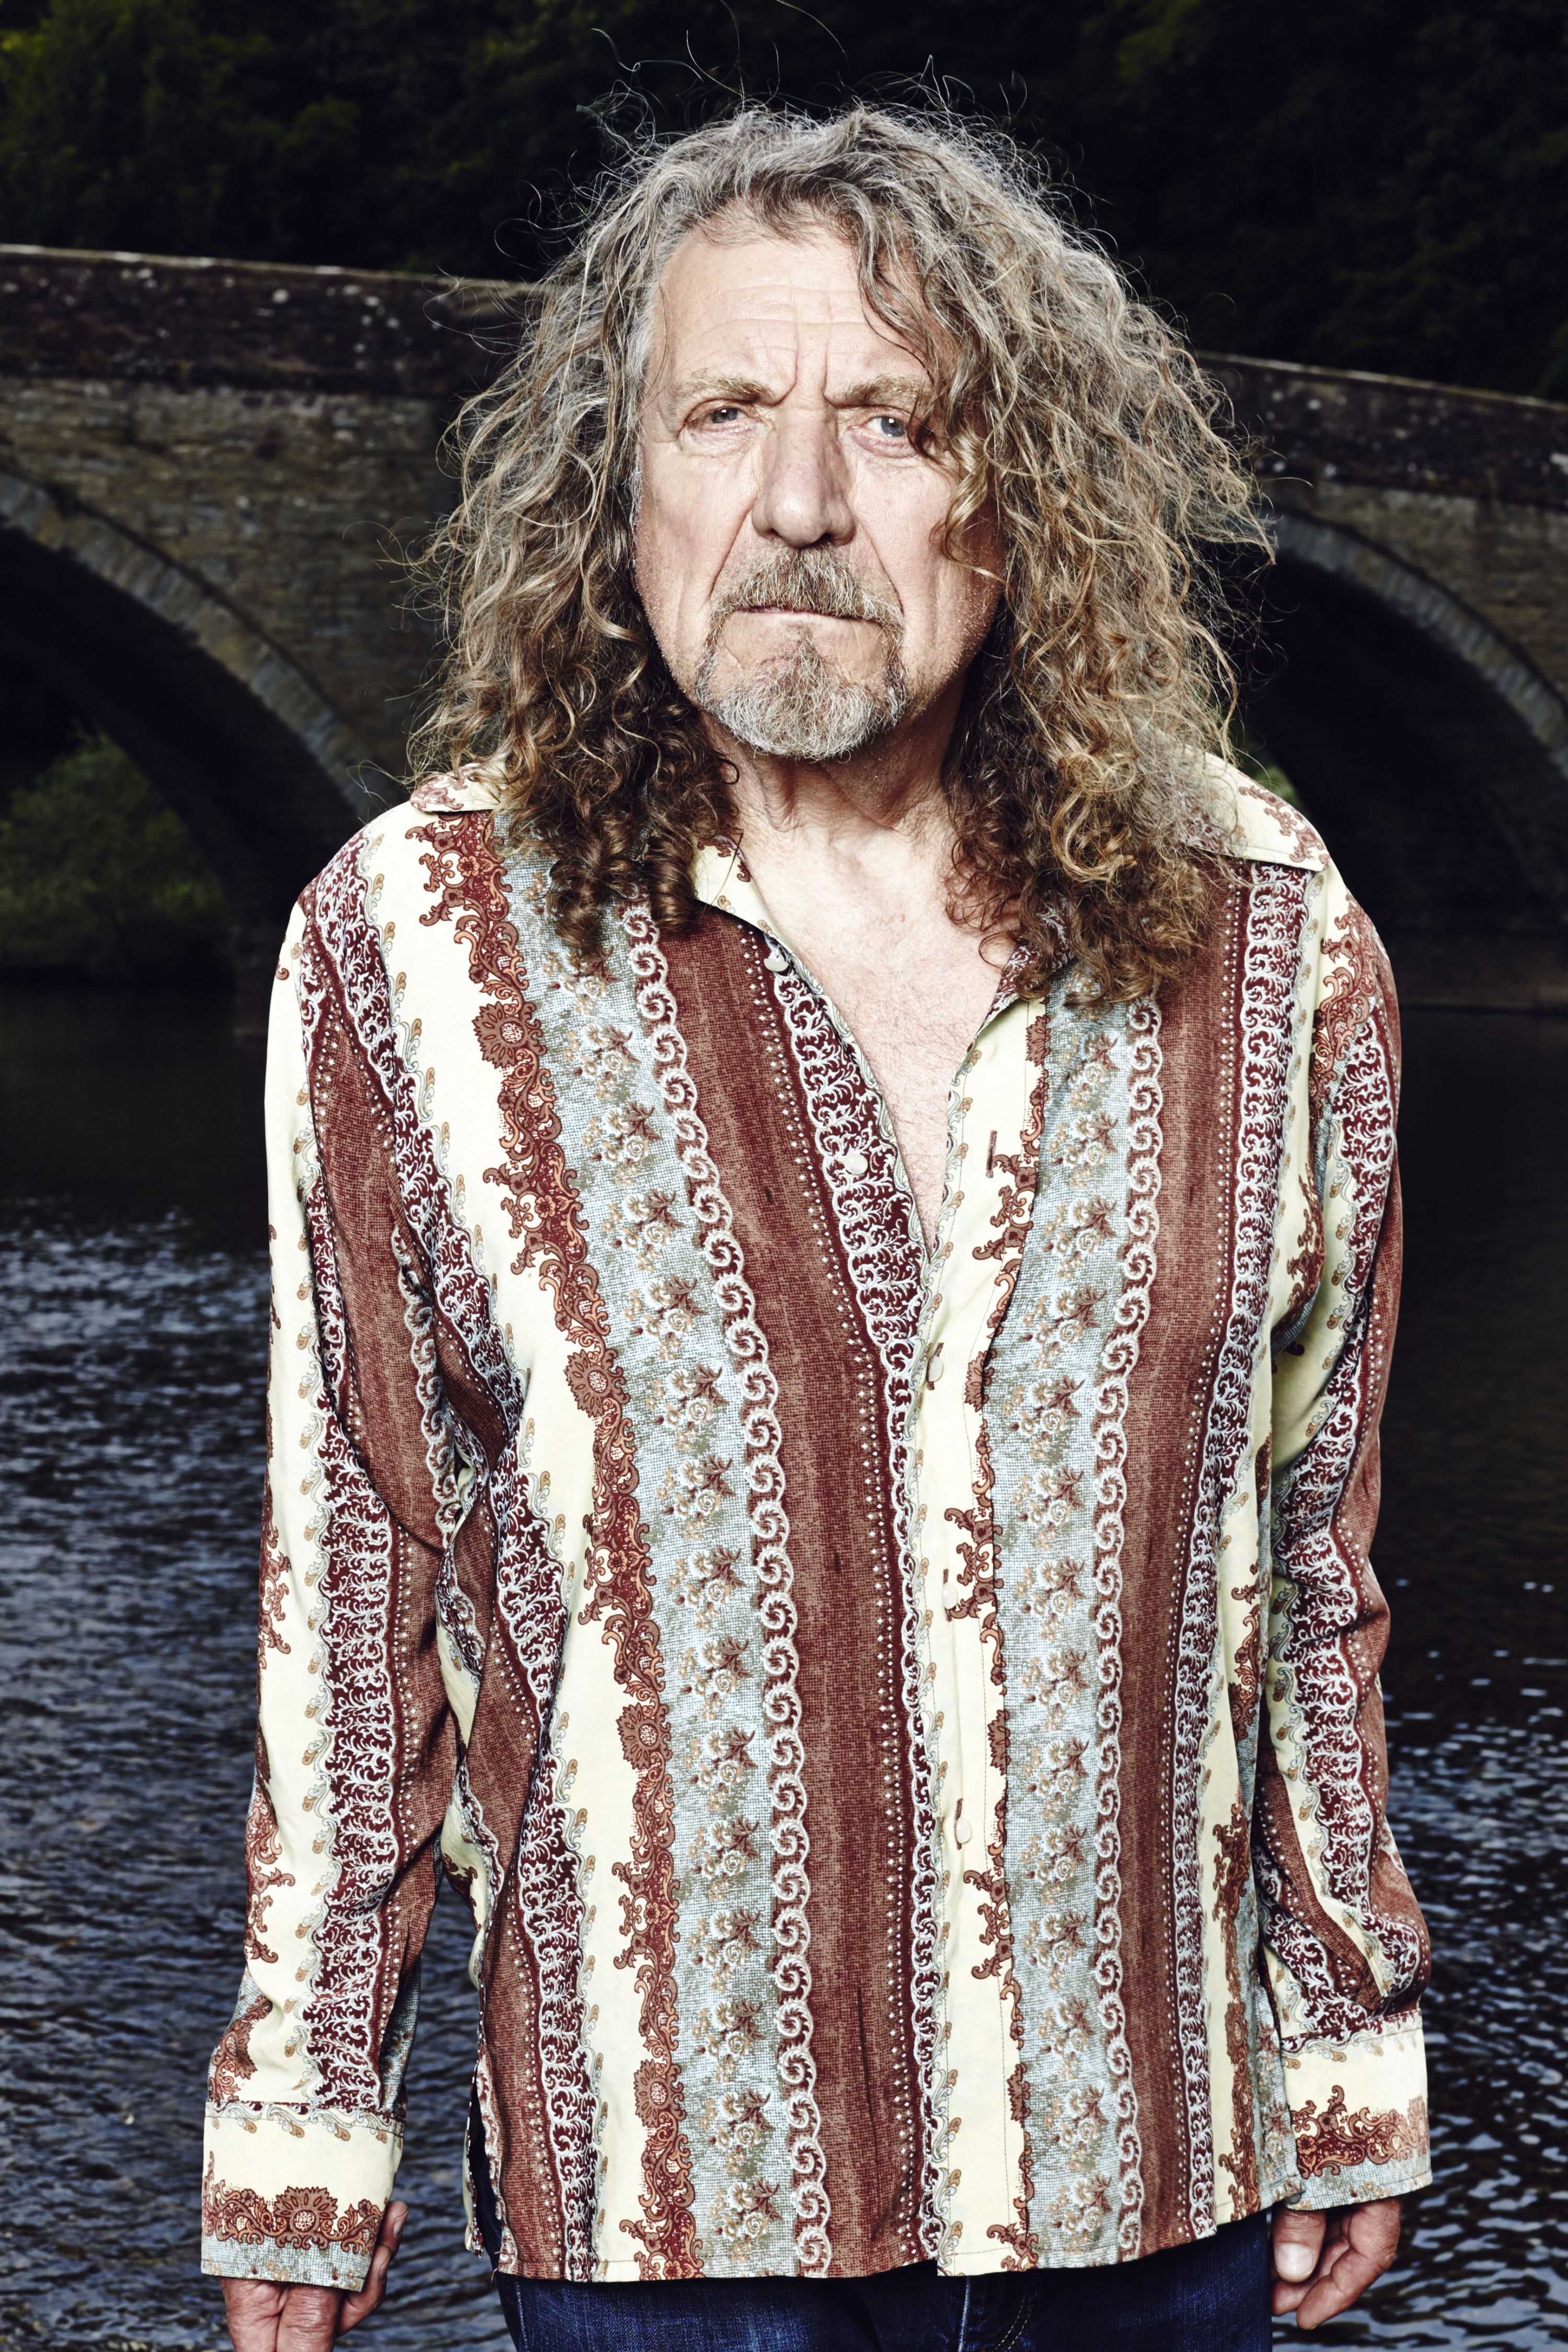 Inside Robert Plant's Wild, Ambitious Solo LP and Plans for a World Tour